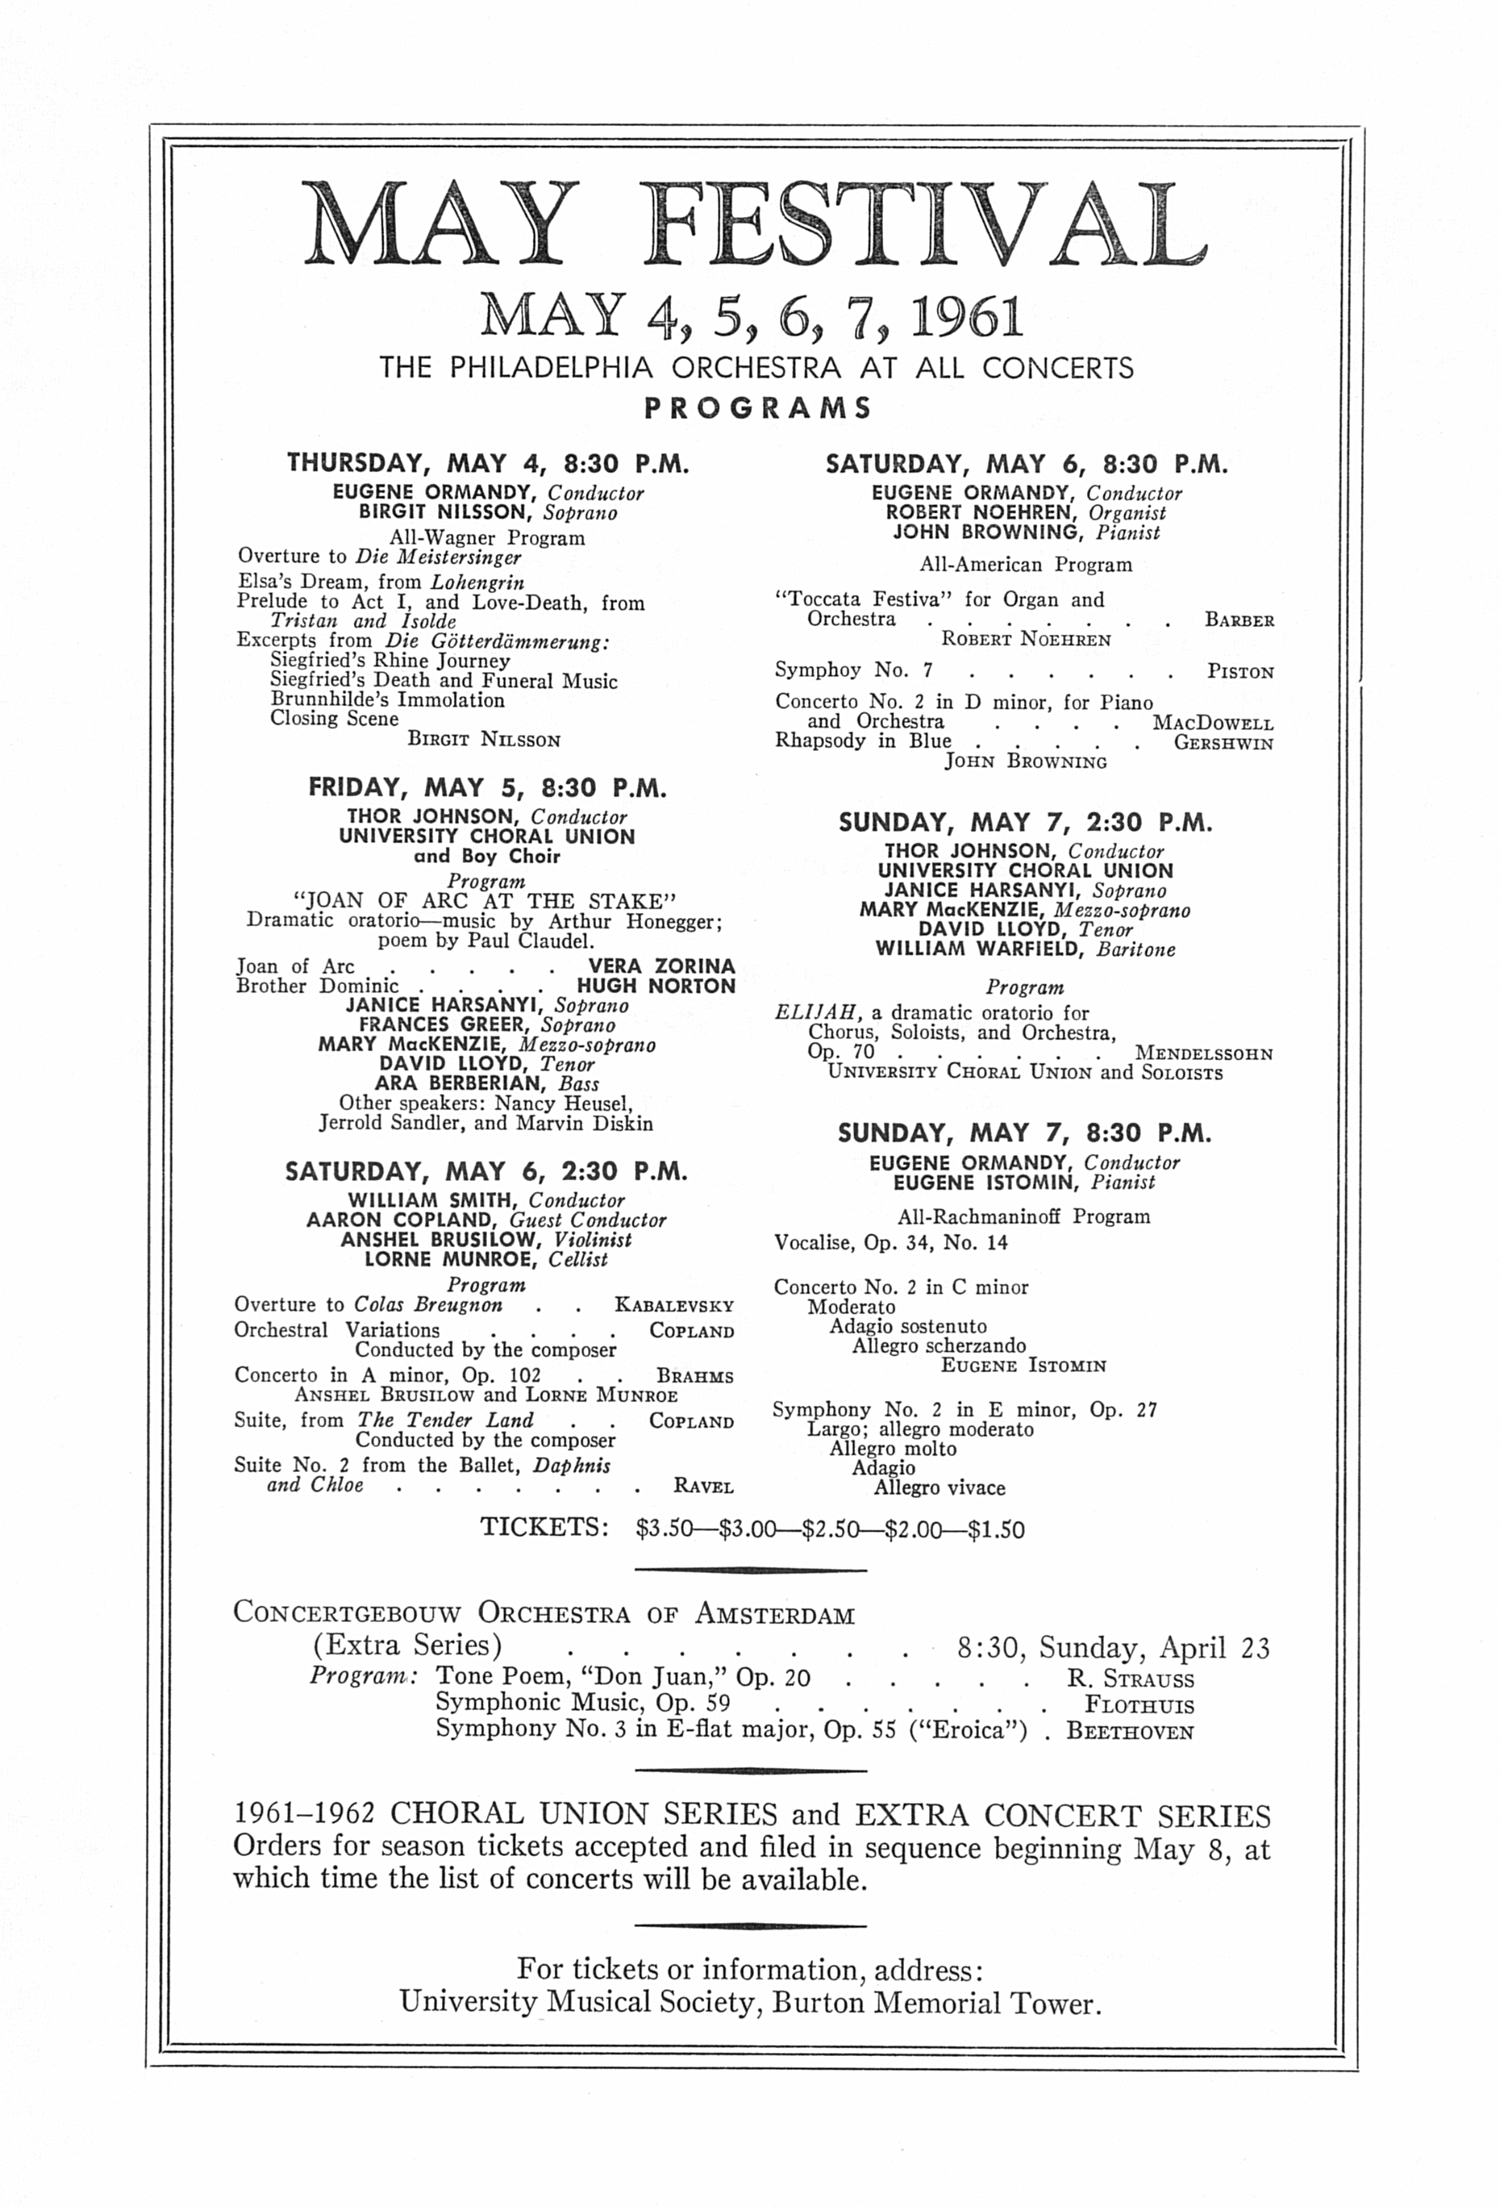 UMS Concert Program, March 26, 1961: Budapest Quartet --  image